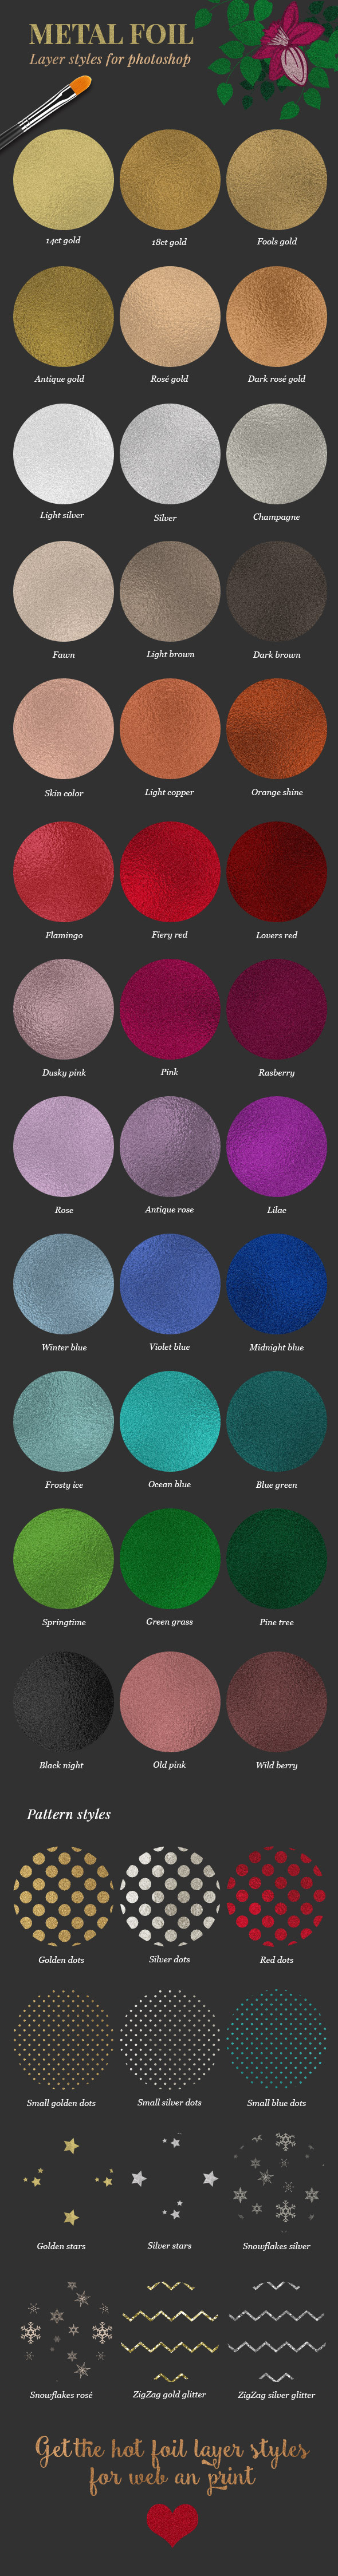 Metal Foil Layer Styles - Miscellaneous Styles